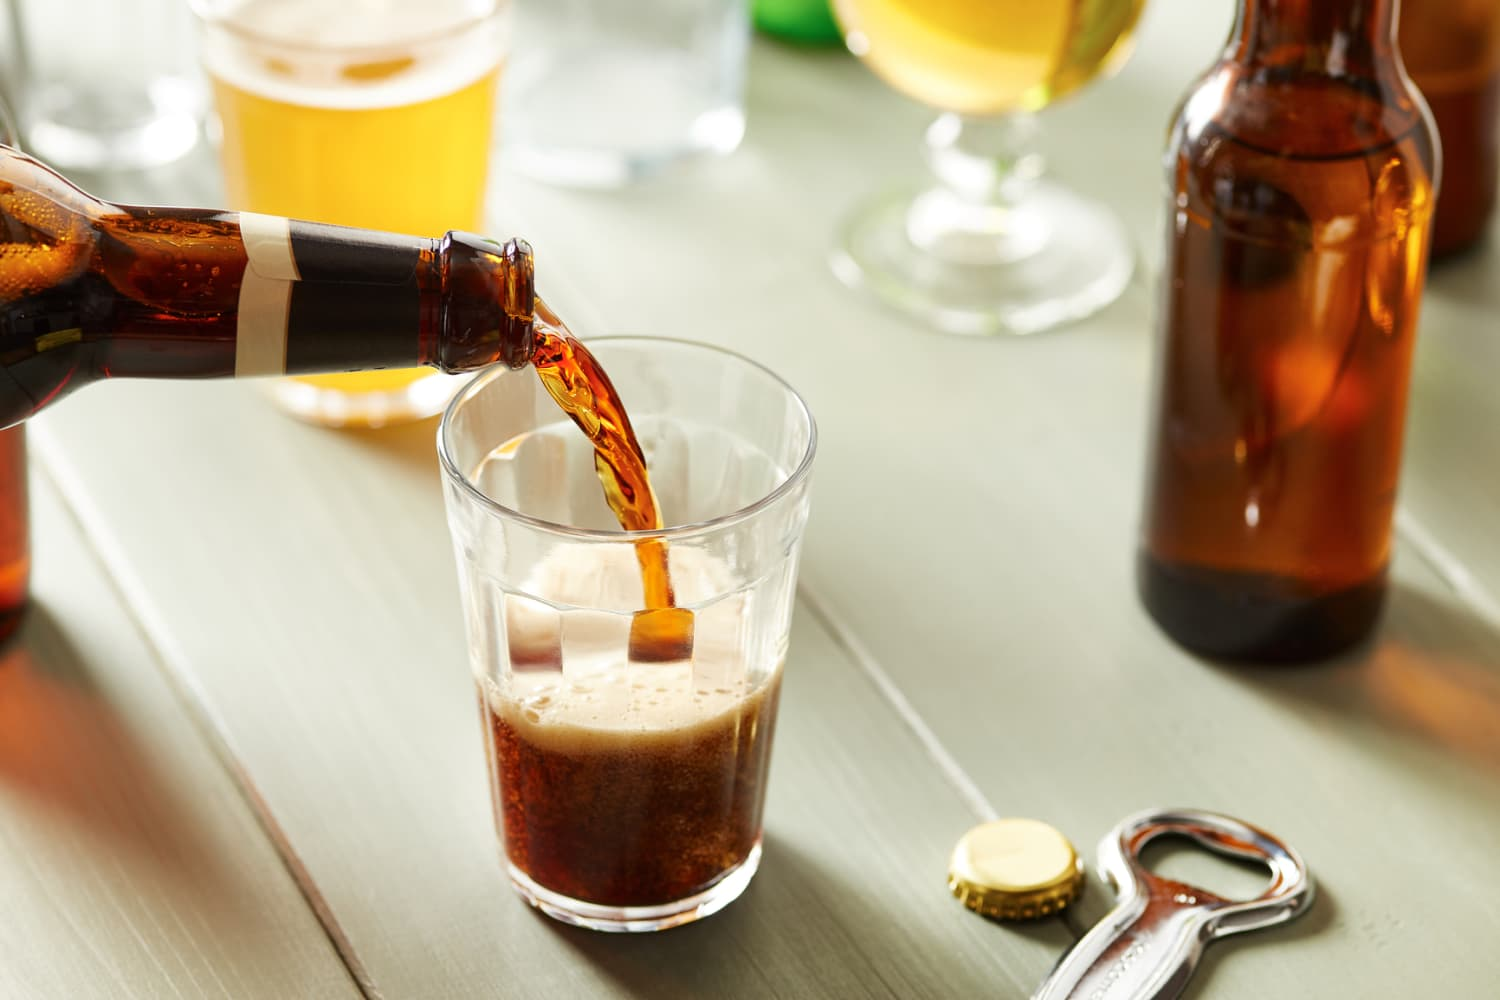 Our Quick Guide to 7 Common Beer Styles